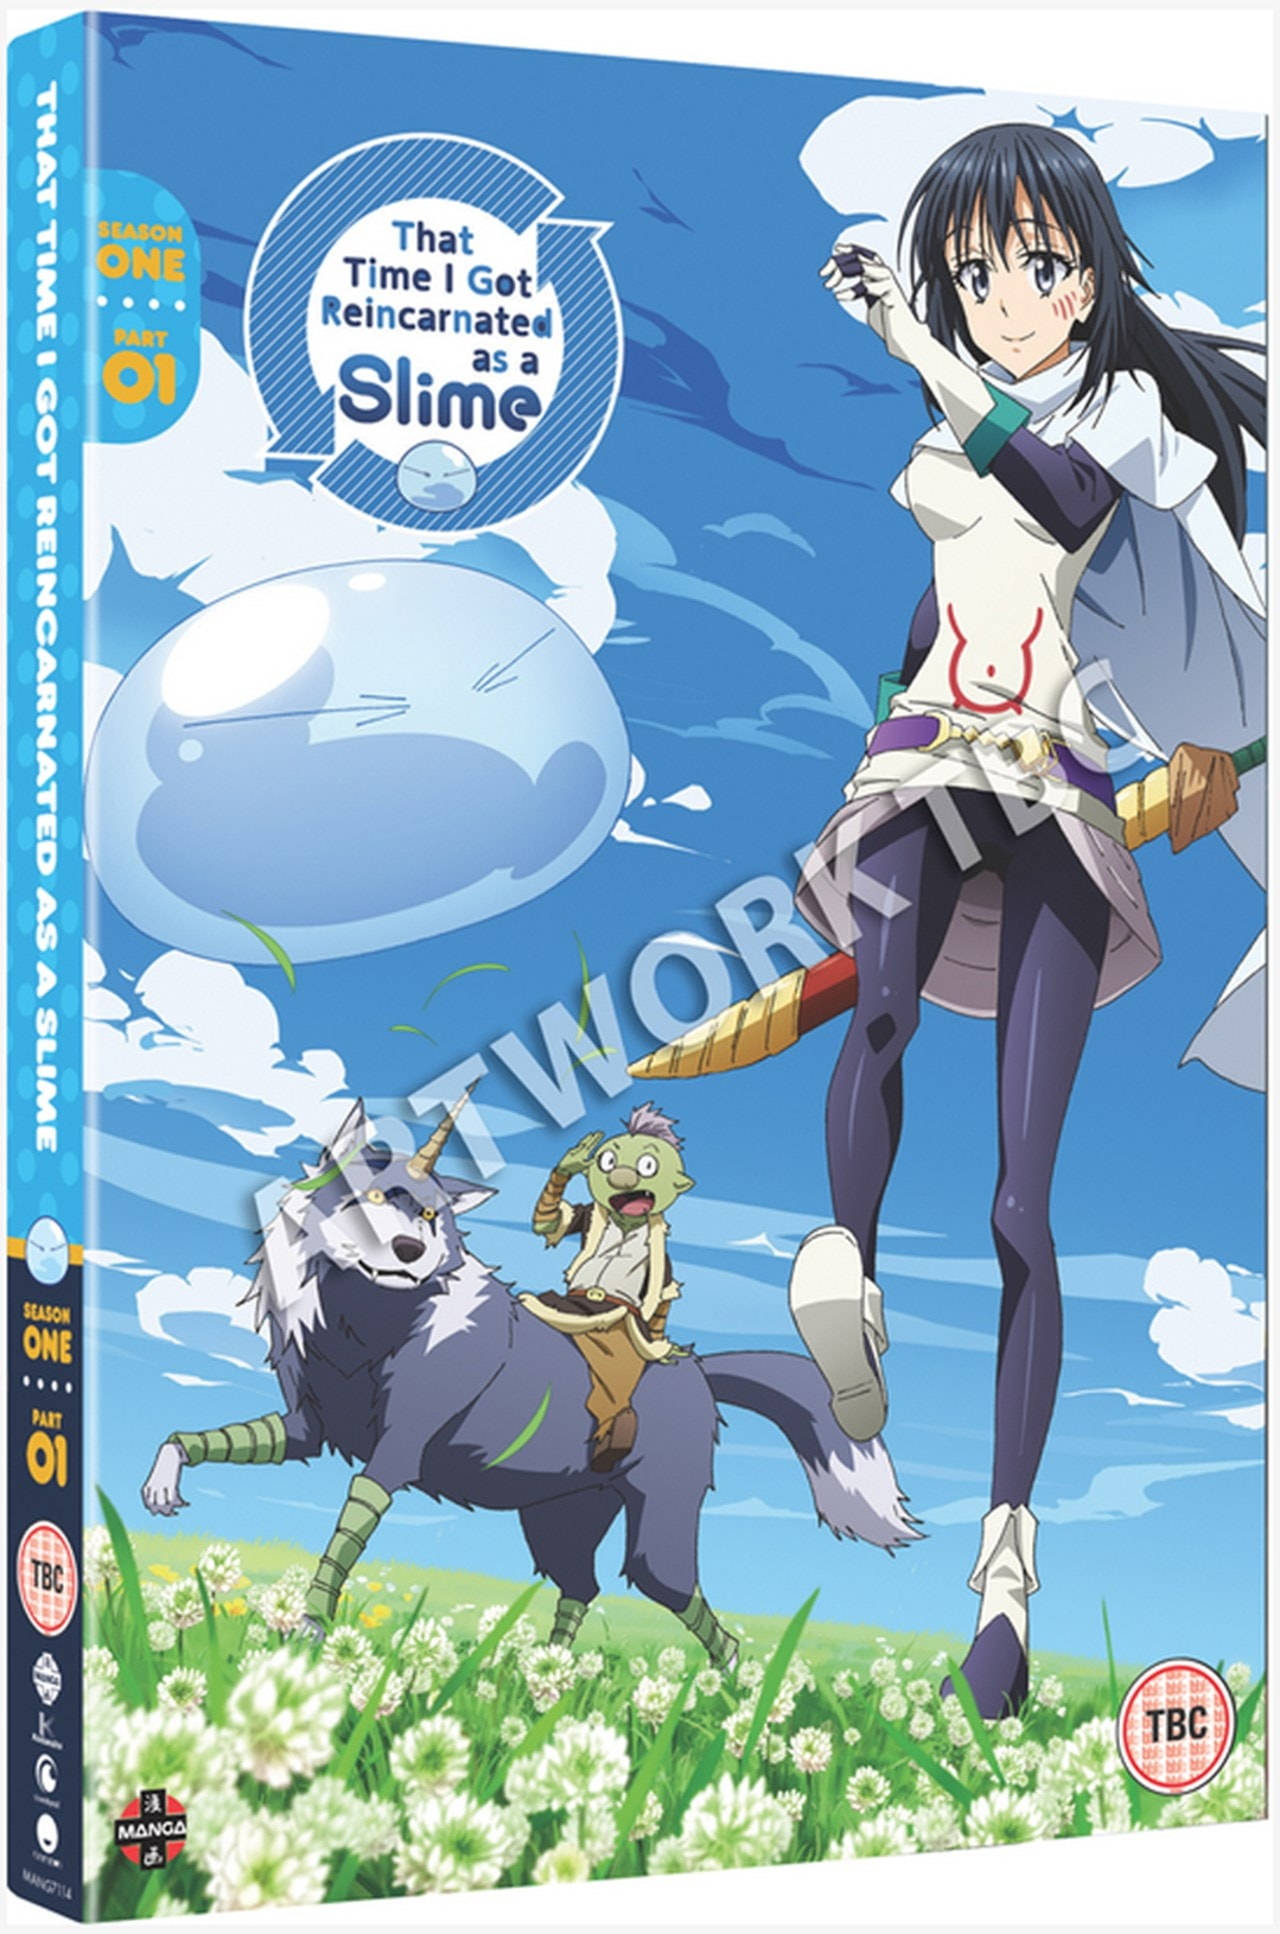 That Time I Got Reincarnated As a Slime: Season 1, Part 1 - 2